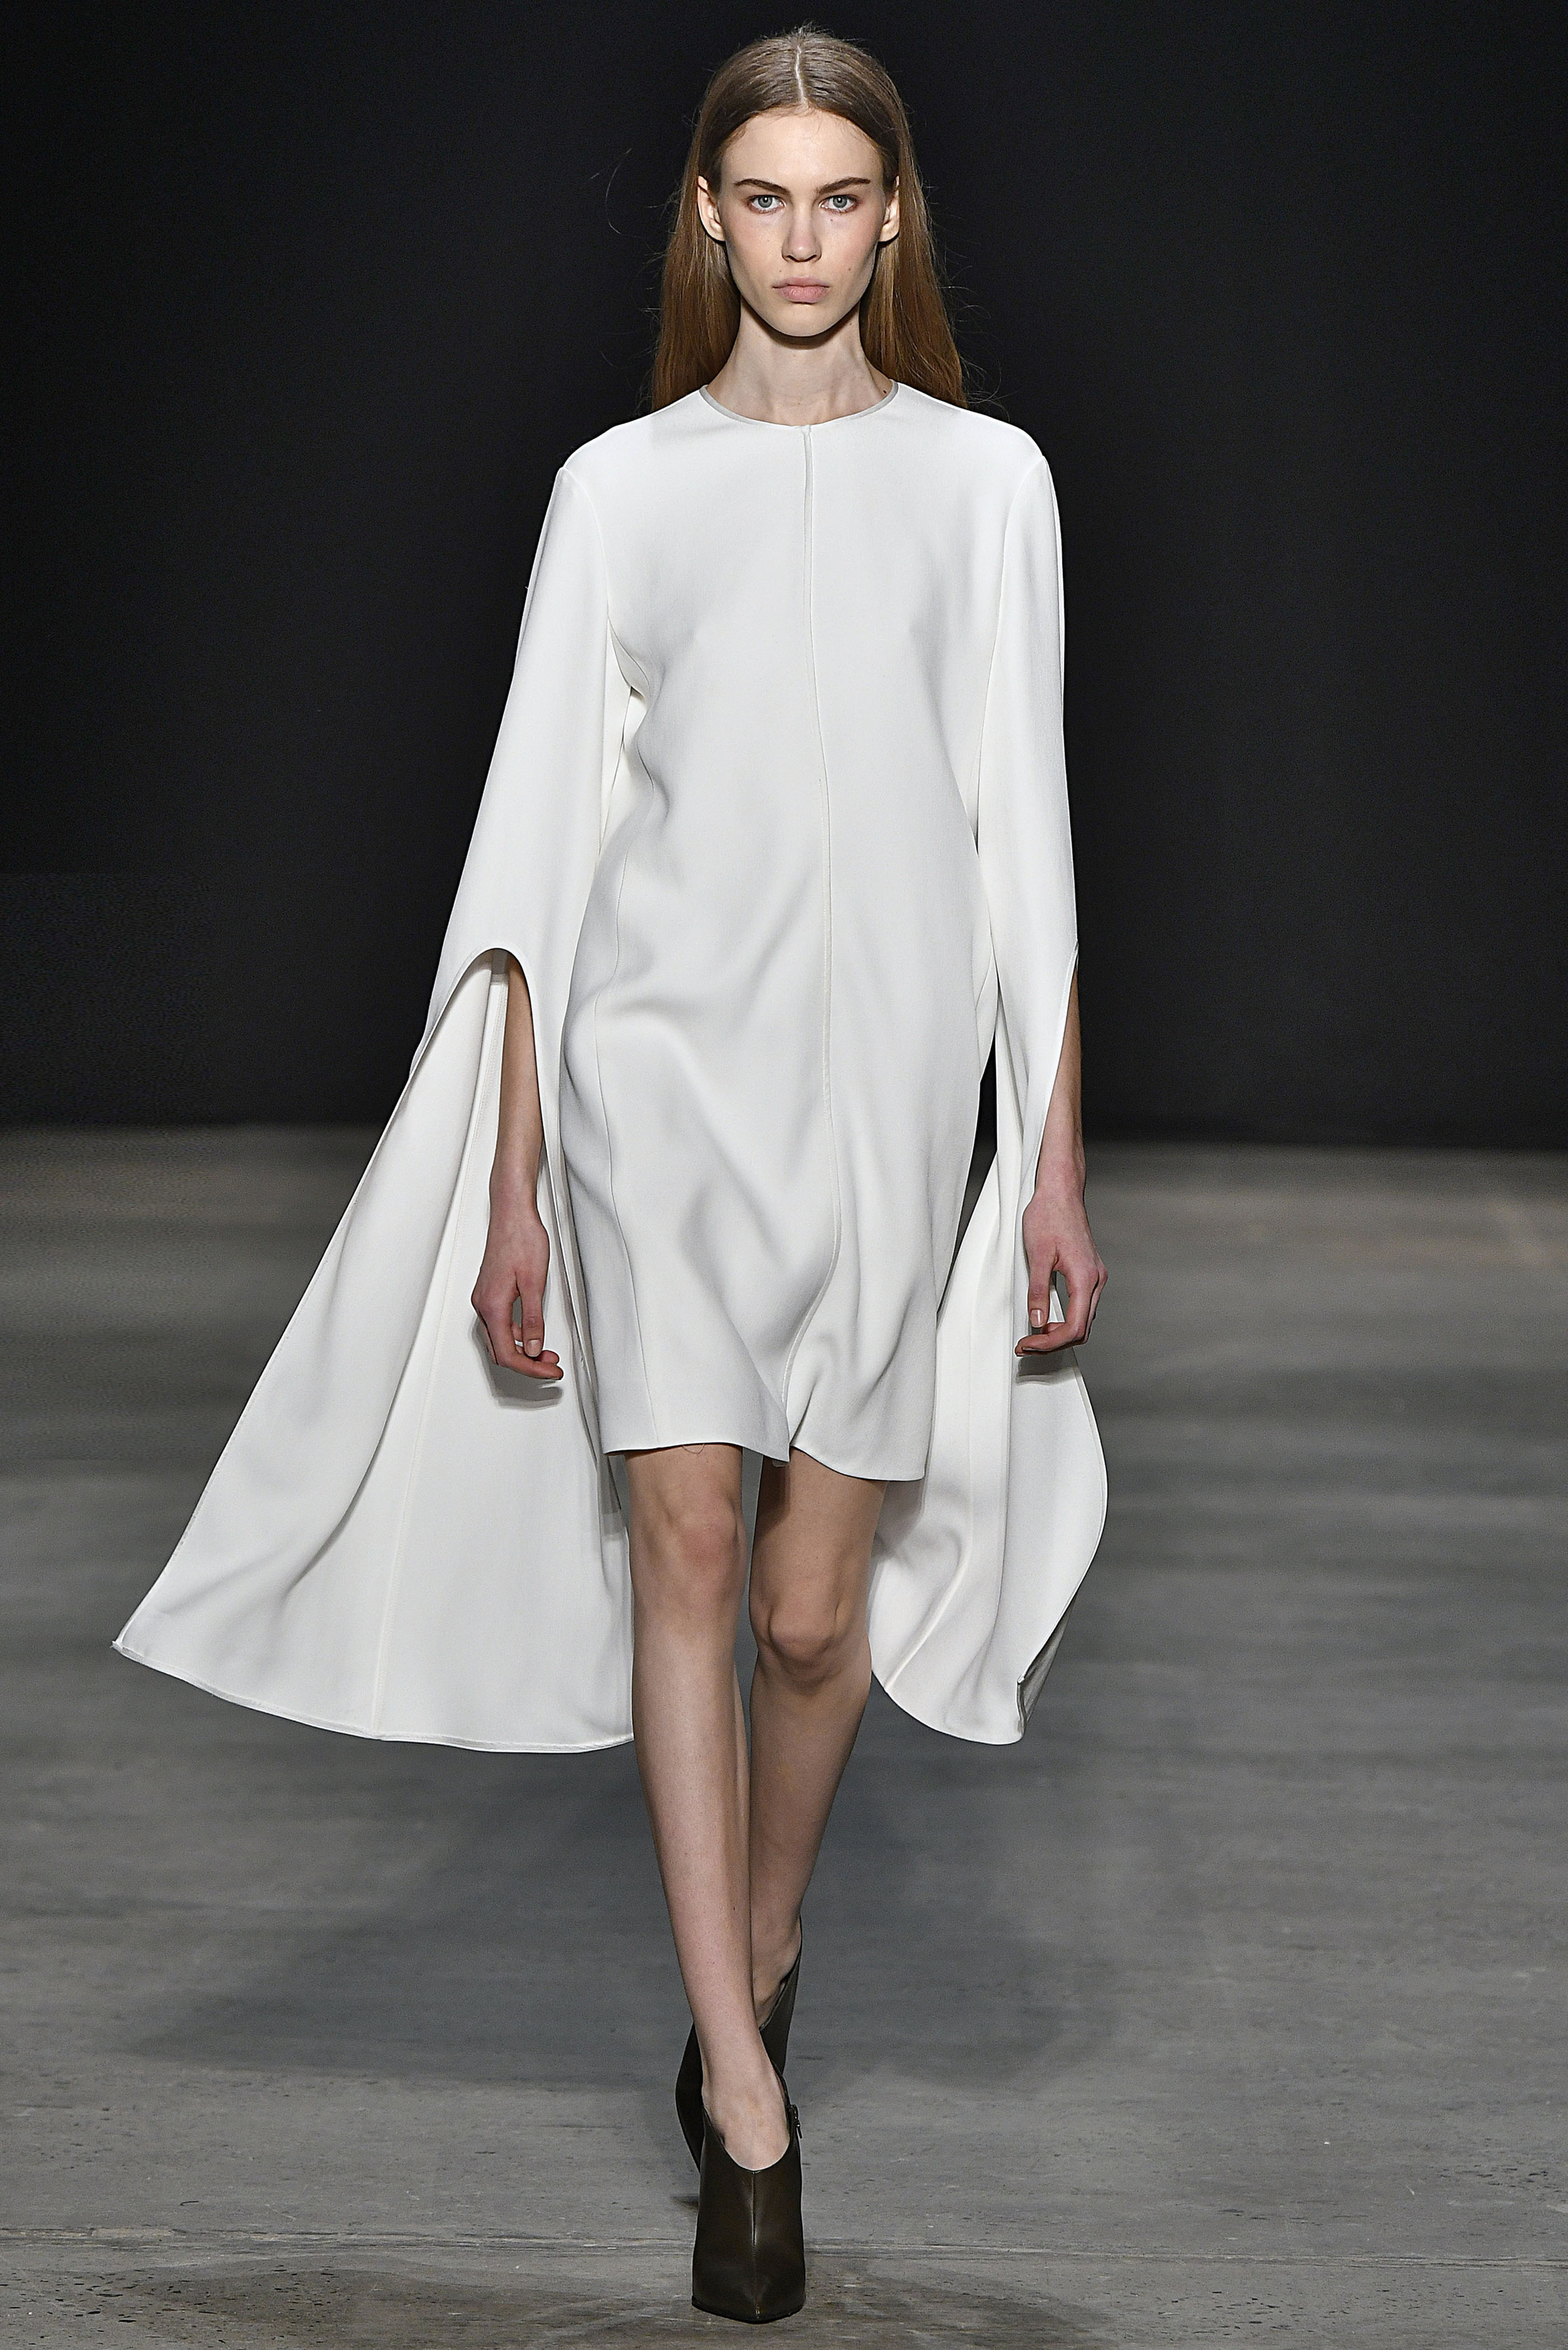 Narciso Rodriguez Fall 2017 collection. White twill crepe dress.